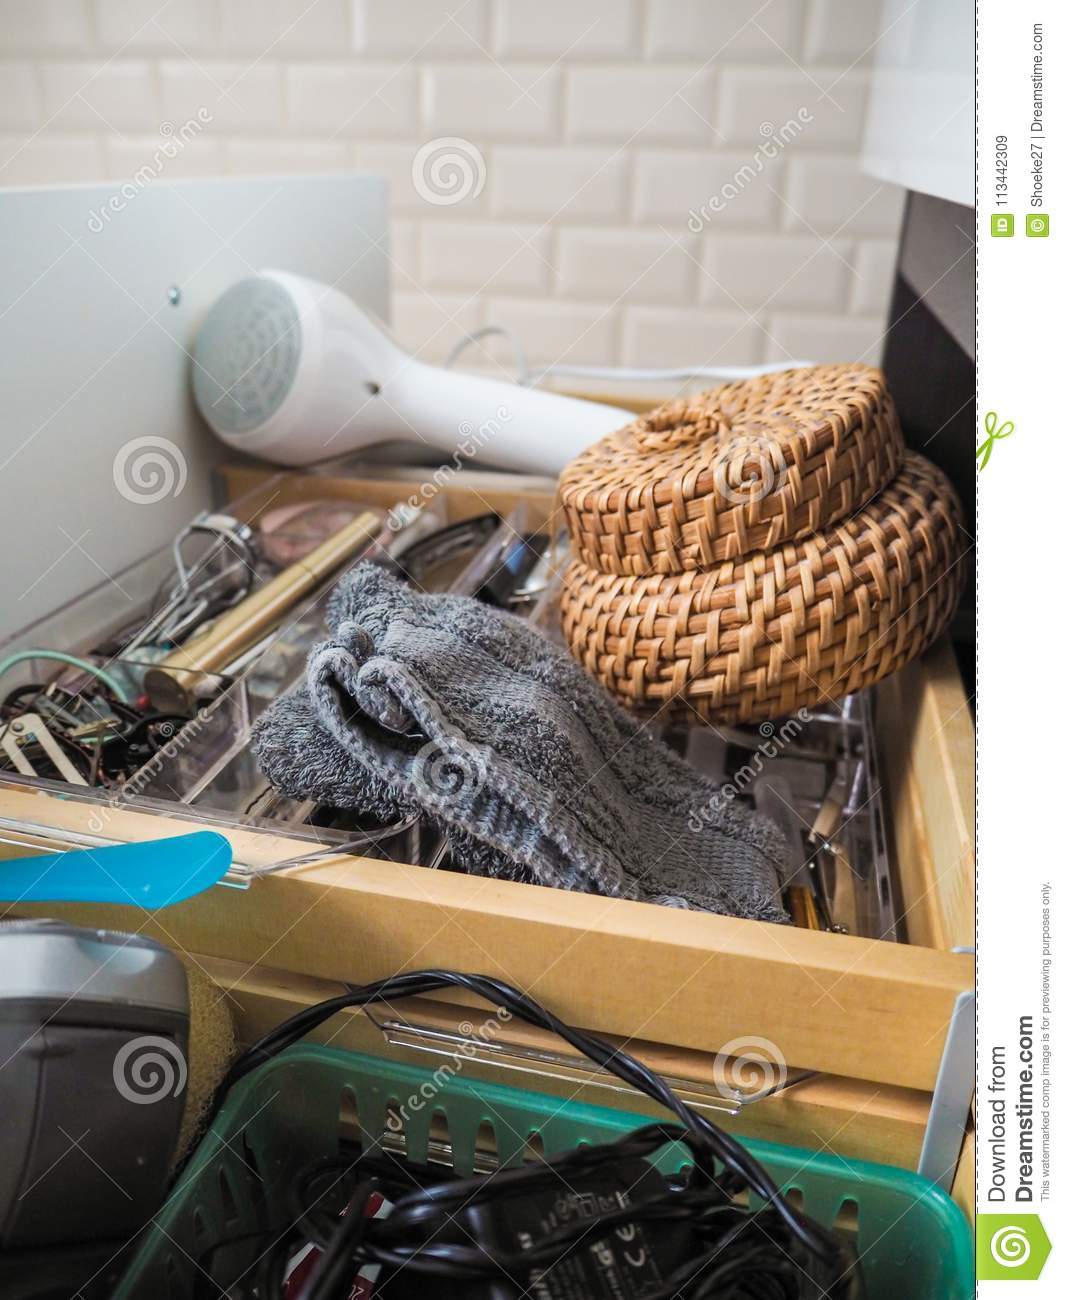 Messy Bathroom: Messy Open Bathroom Drawer Stock Image. Image Of Cabinet